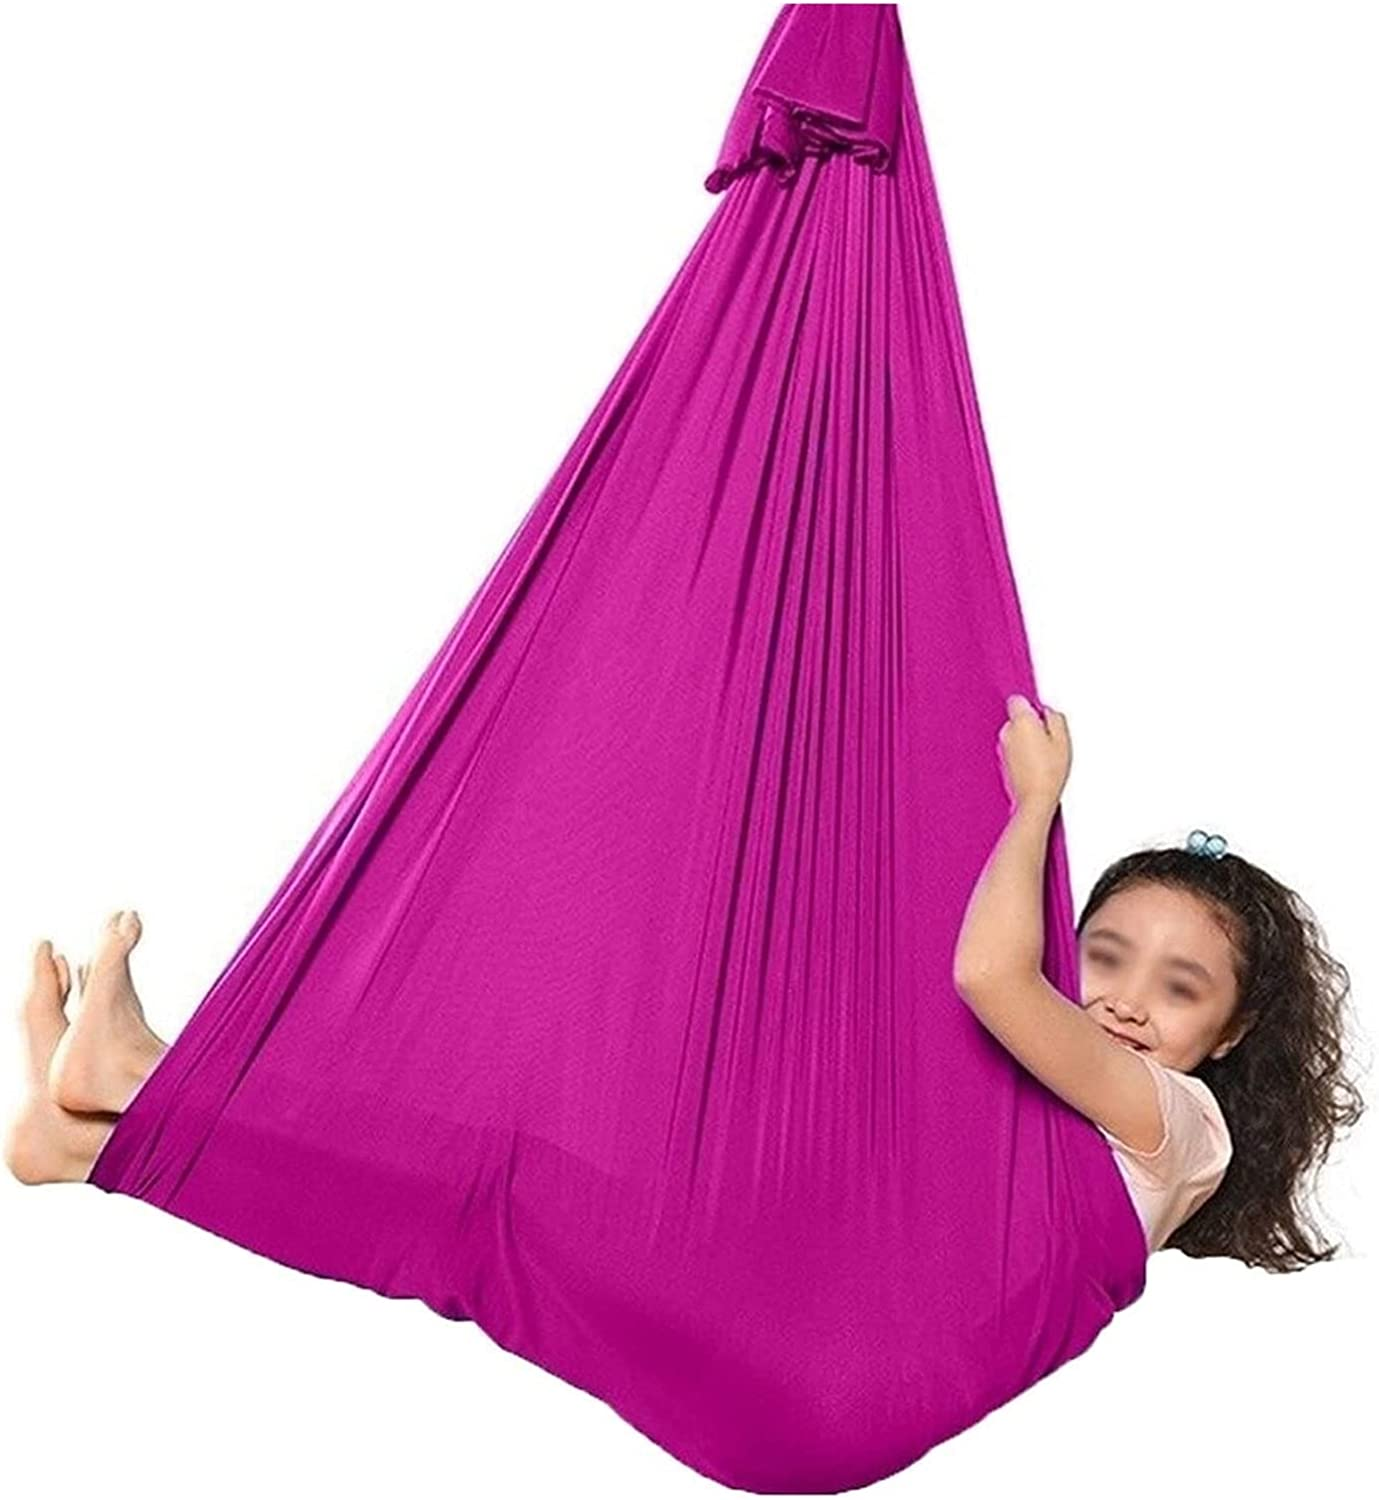 XUNMAIFLB Cuddle Hammock Swing OFFicial mail order Ranking TOP11 Great Pro Autism for Sensory ADHD